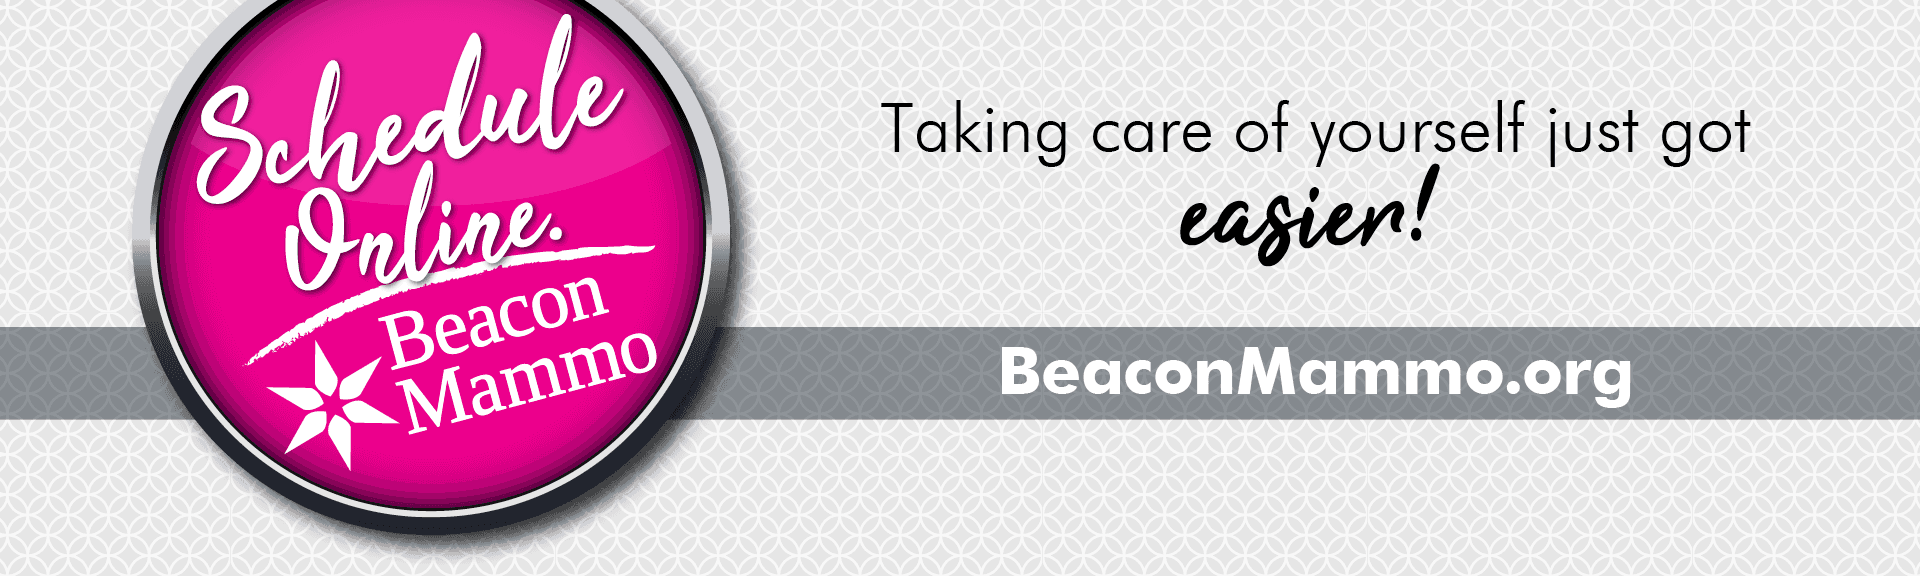 Taking Care of Yourself Just Got Easier BeaconMammo.org